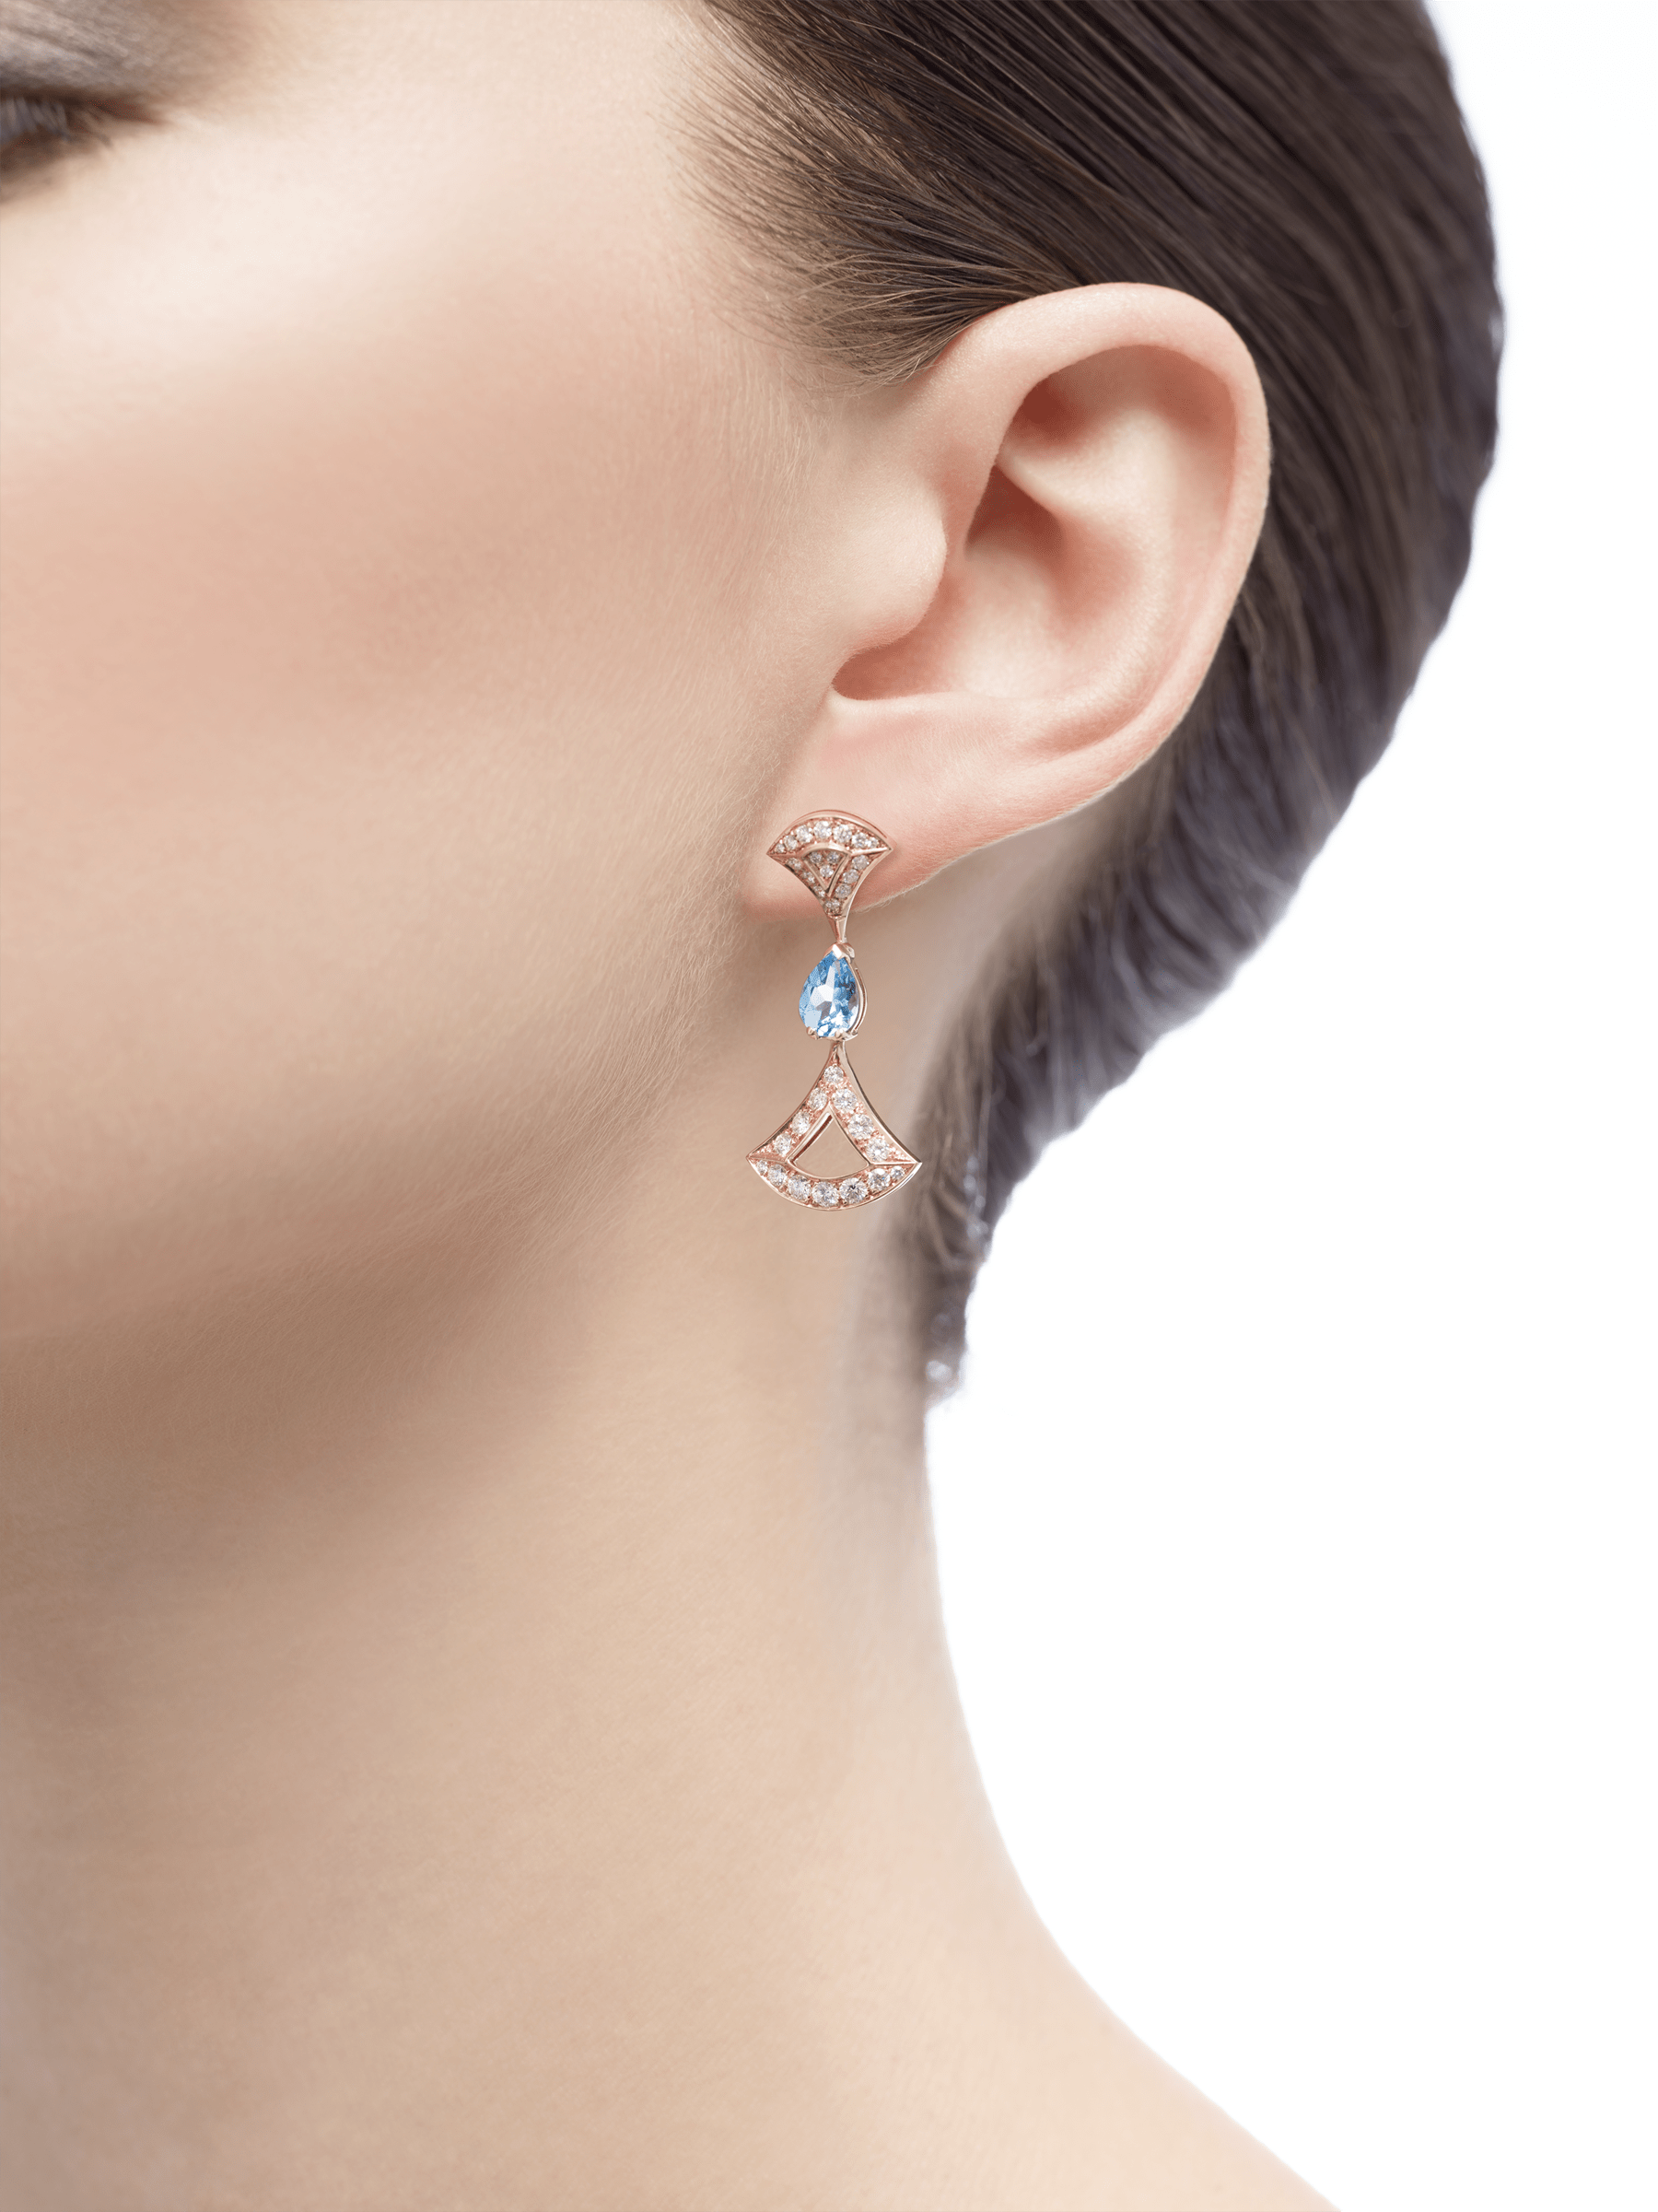 Boucles d'oreilles DIVAS' DREAM en or rose 18 K serties de pierres de couleur et pavé diamants 355620 image 3